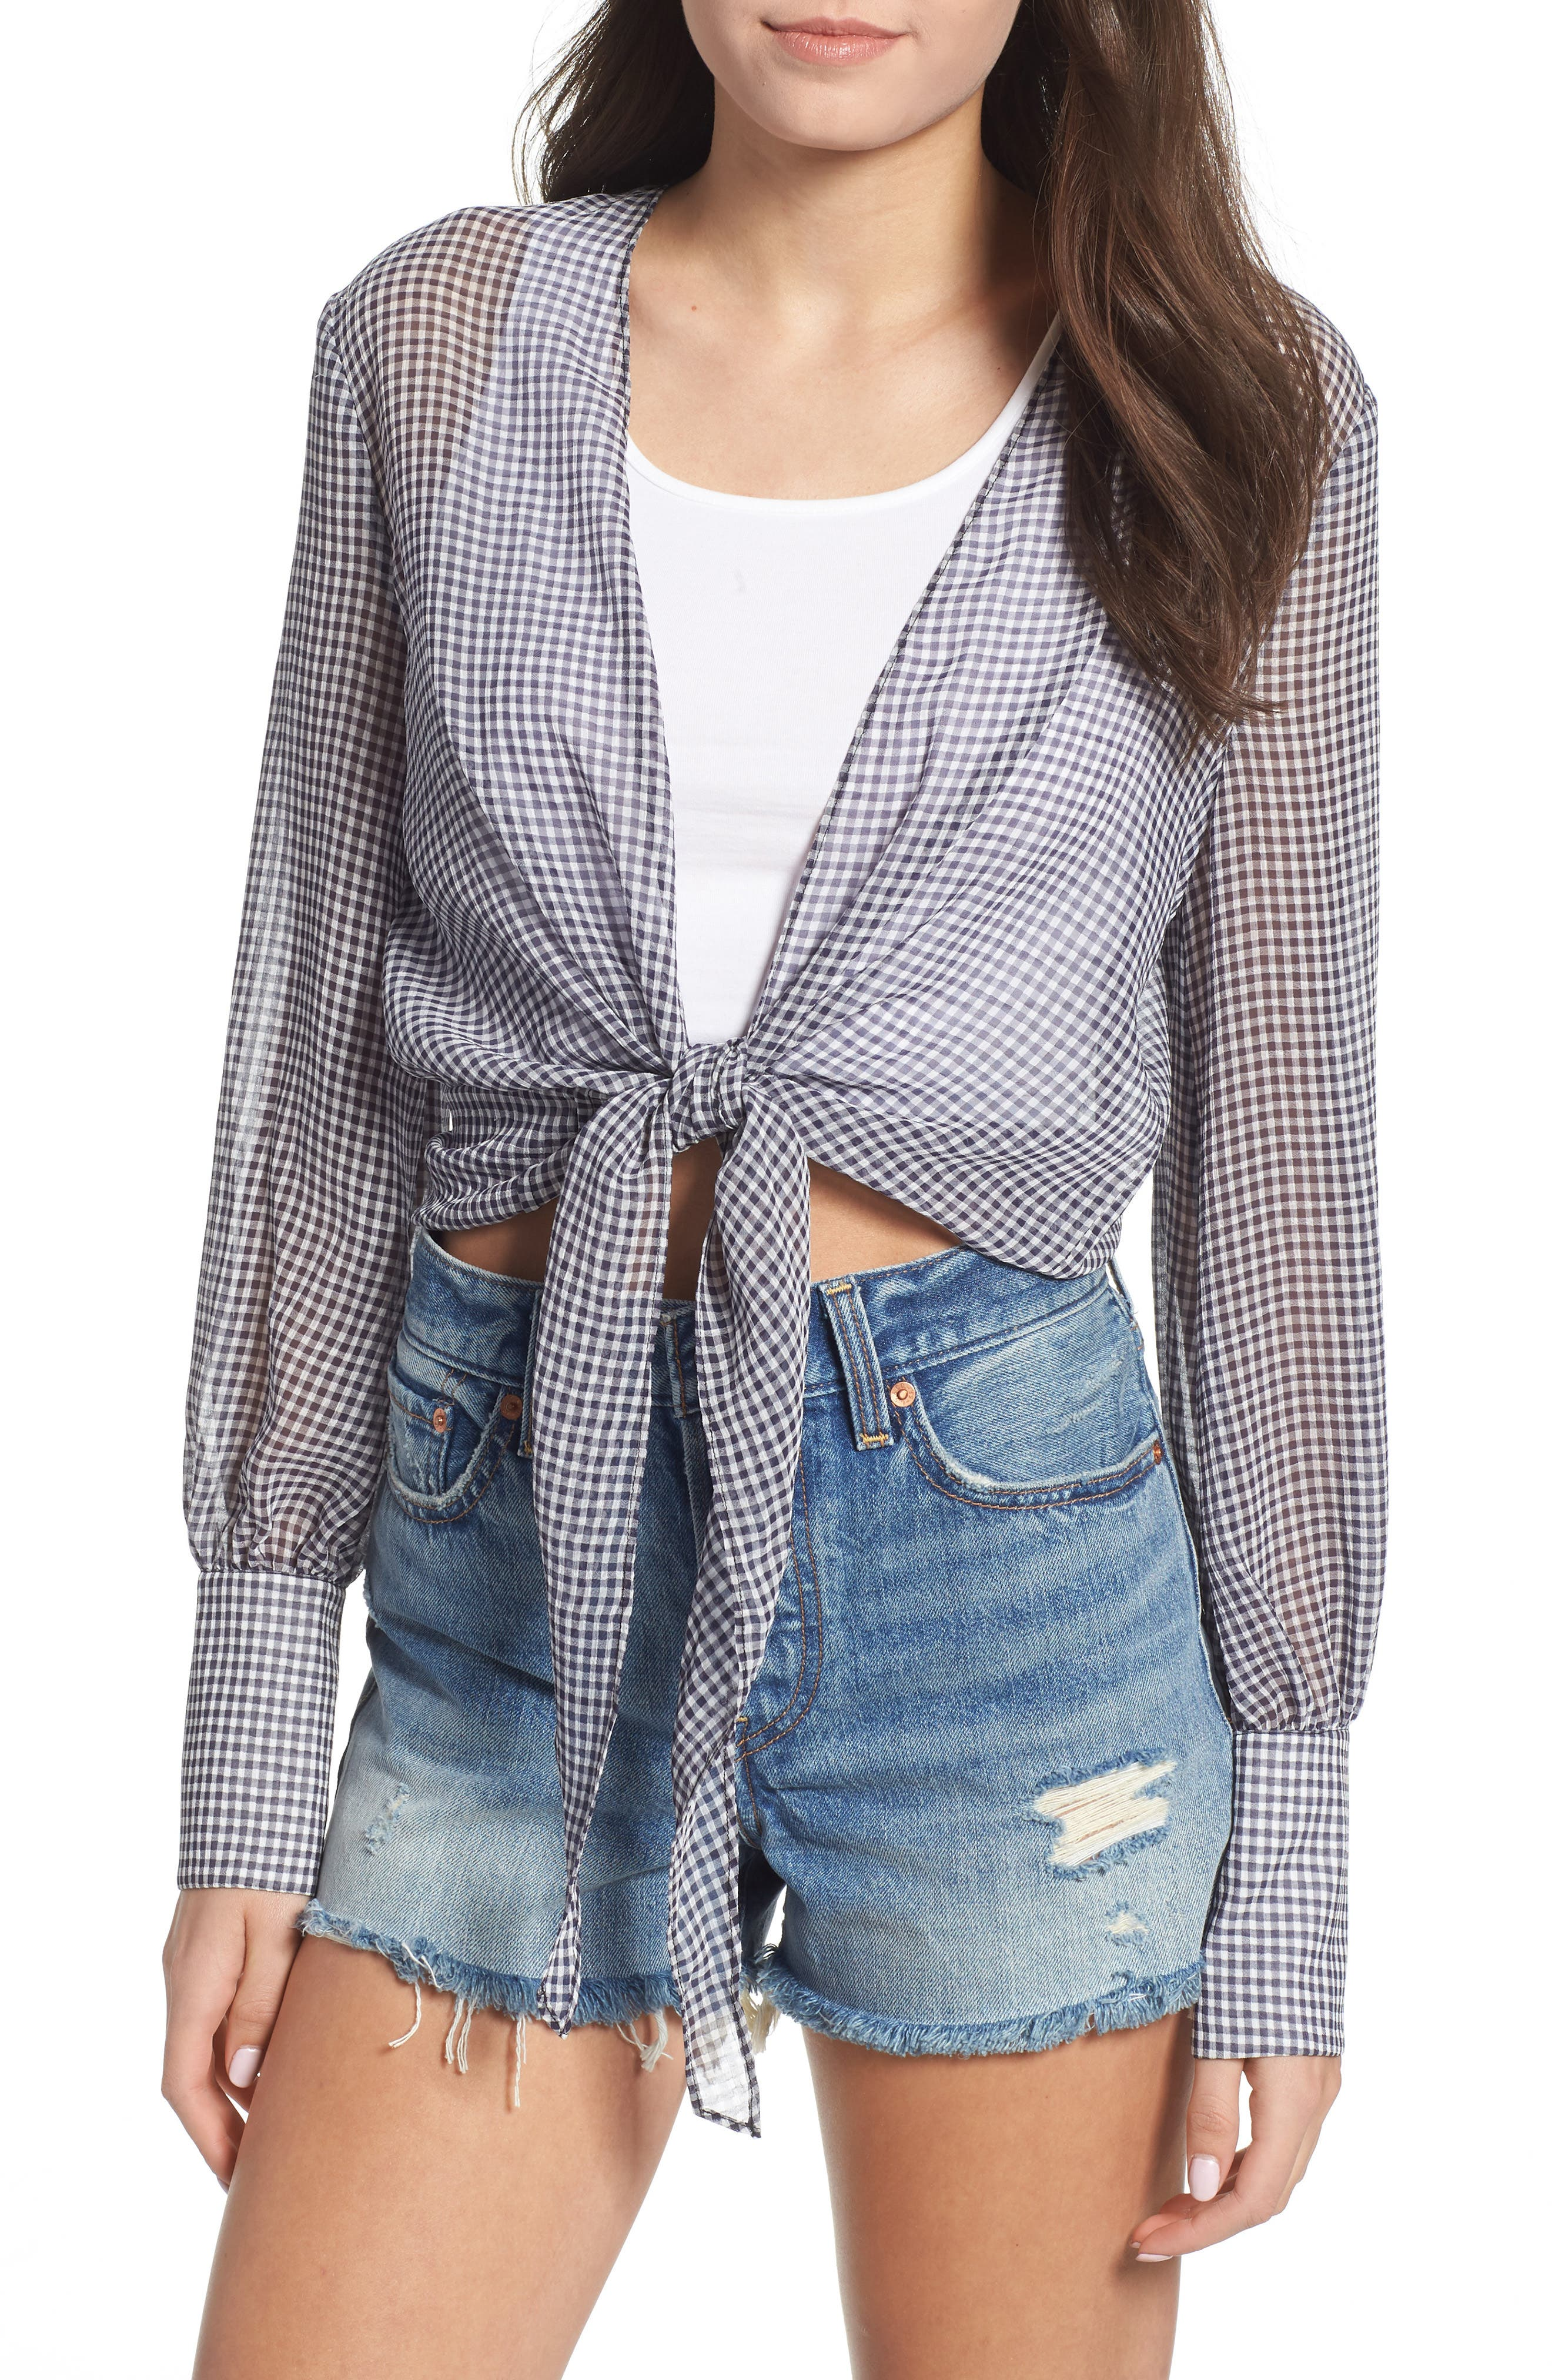 THE EAST ORDER Heather Tie Front Top, Main, color, 460